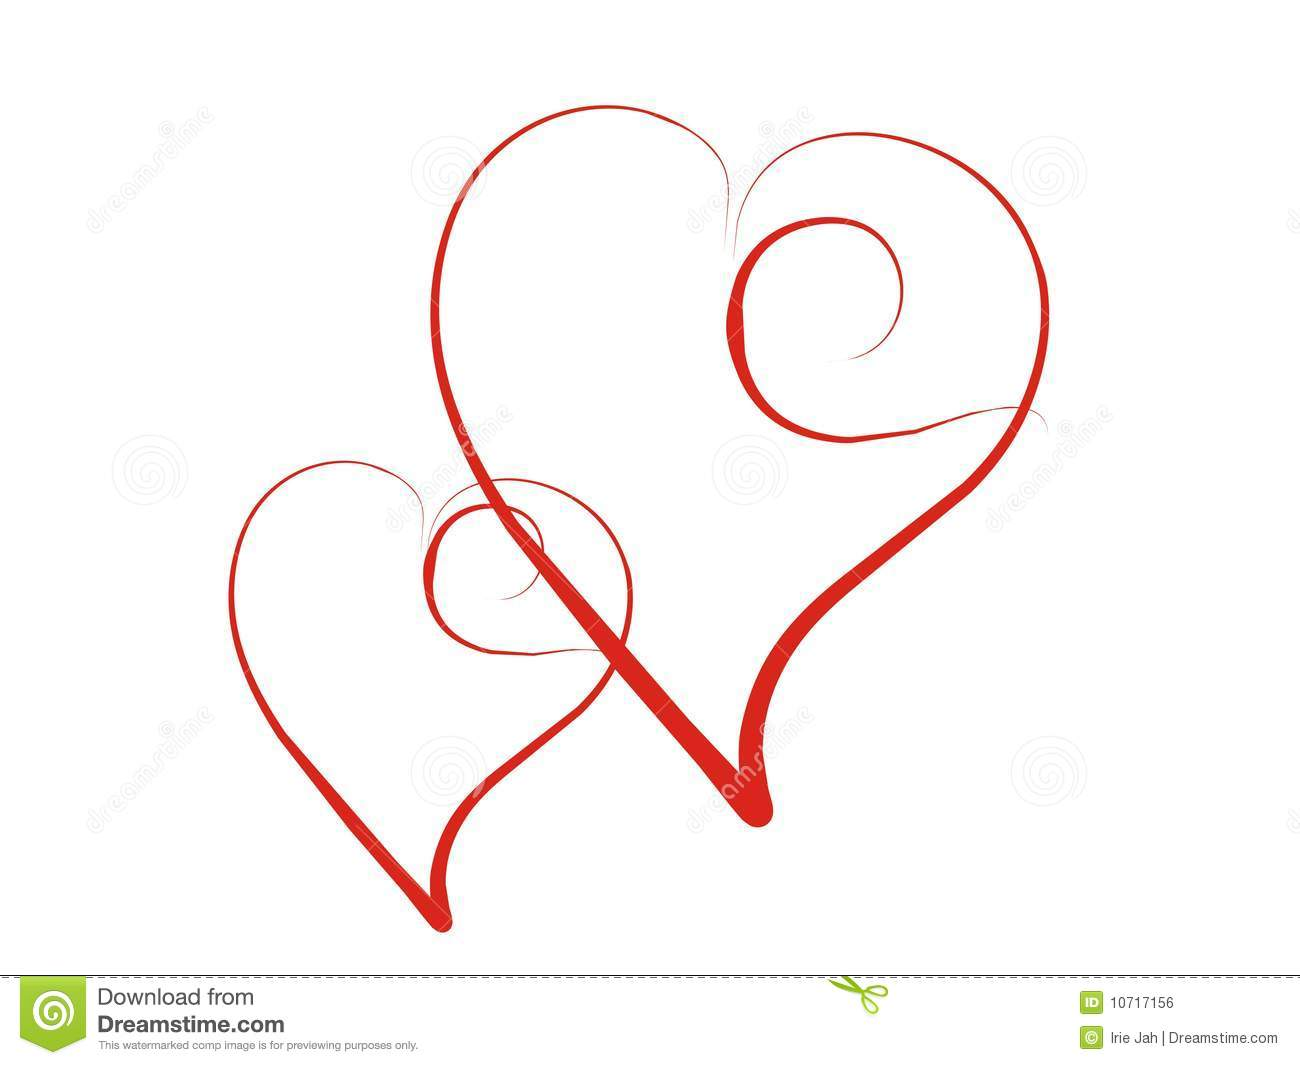 Hearts Royalty Free Stock Image - Image: 10717156